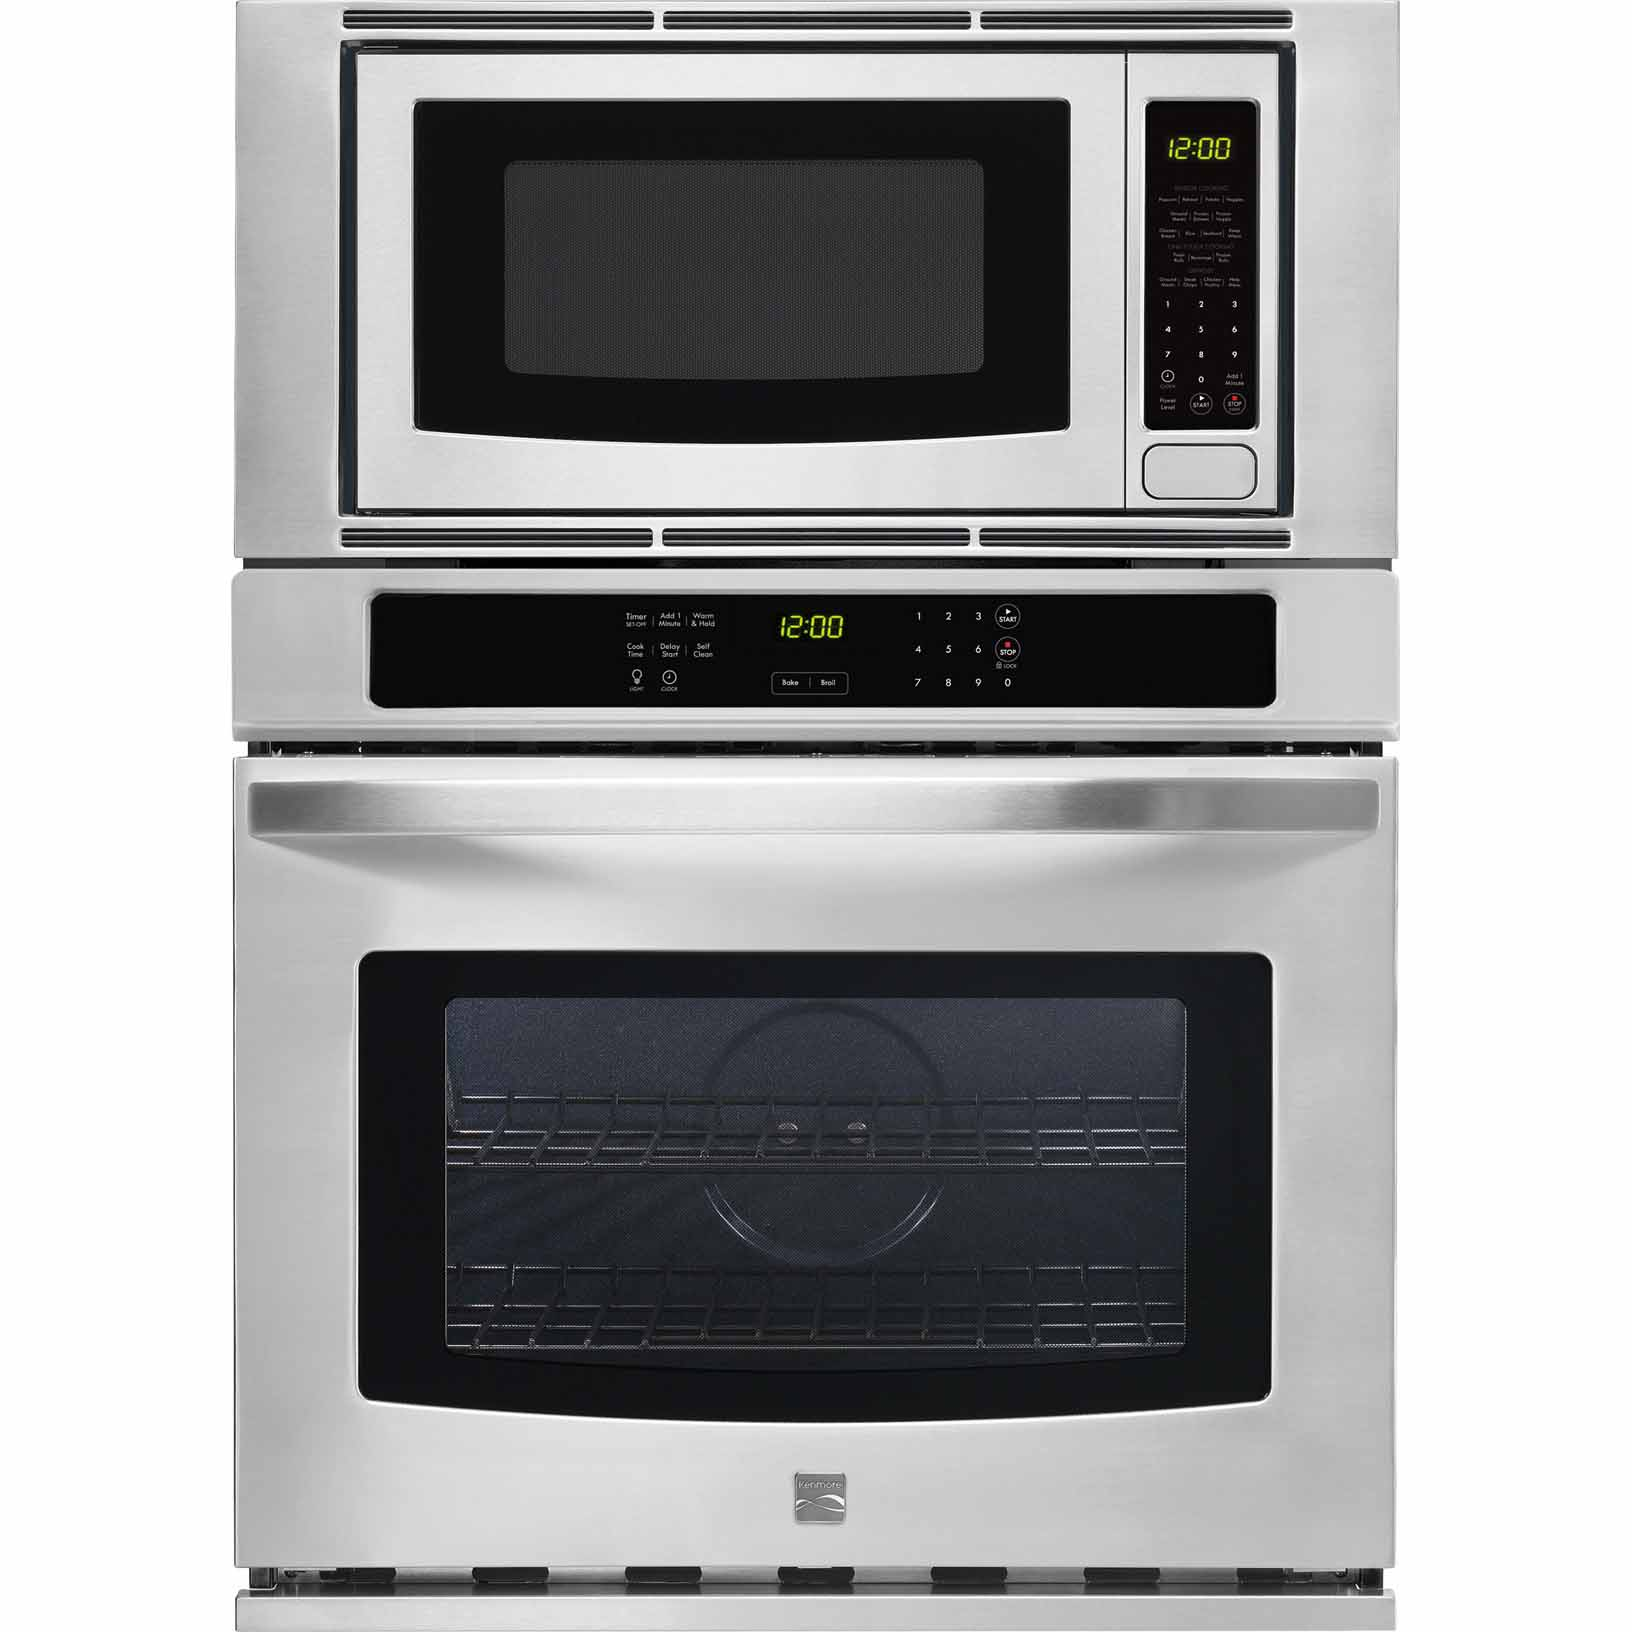 hight resolution of wall ovens microwave oven combination sears home wiring diagram kenmore combination microwave wall oven wiring diagram